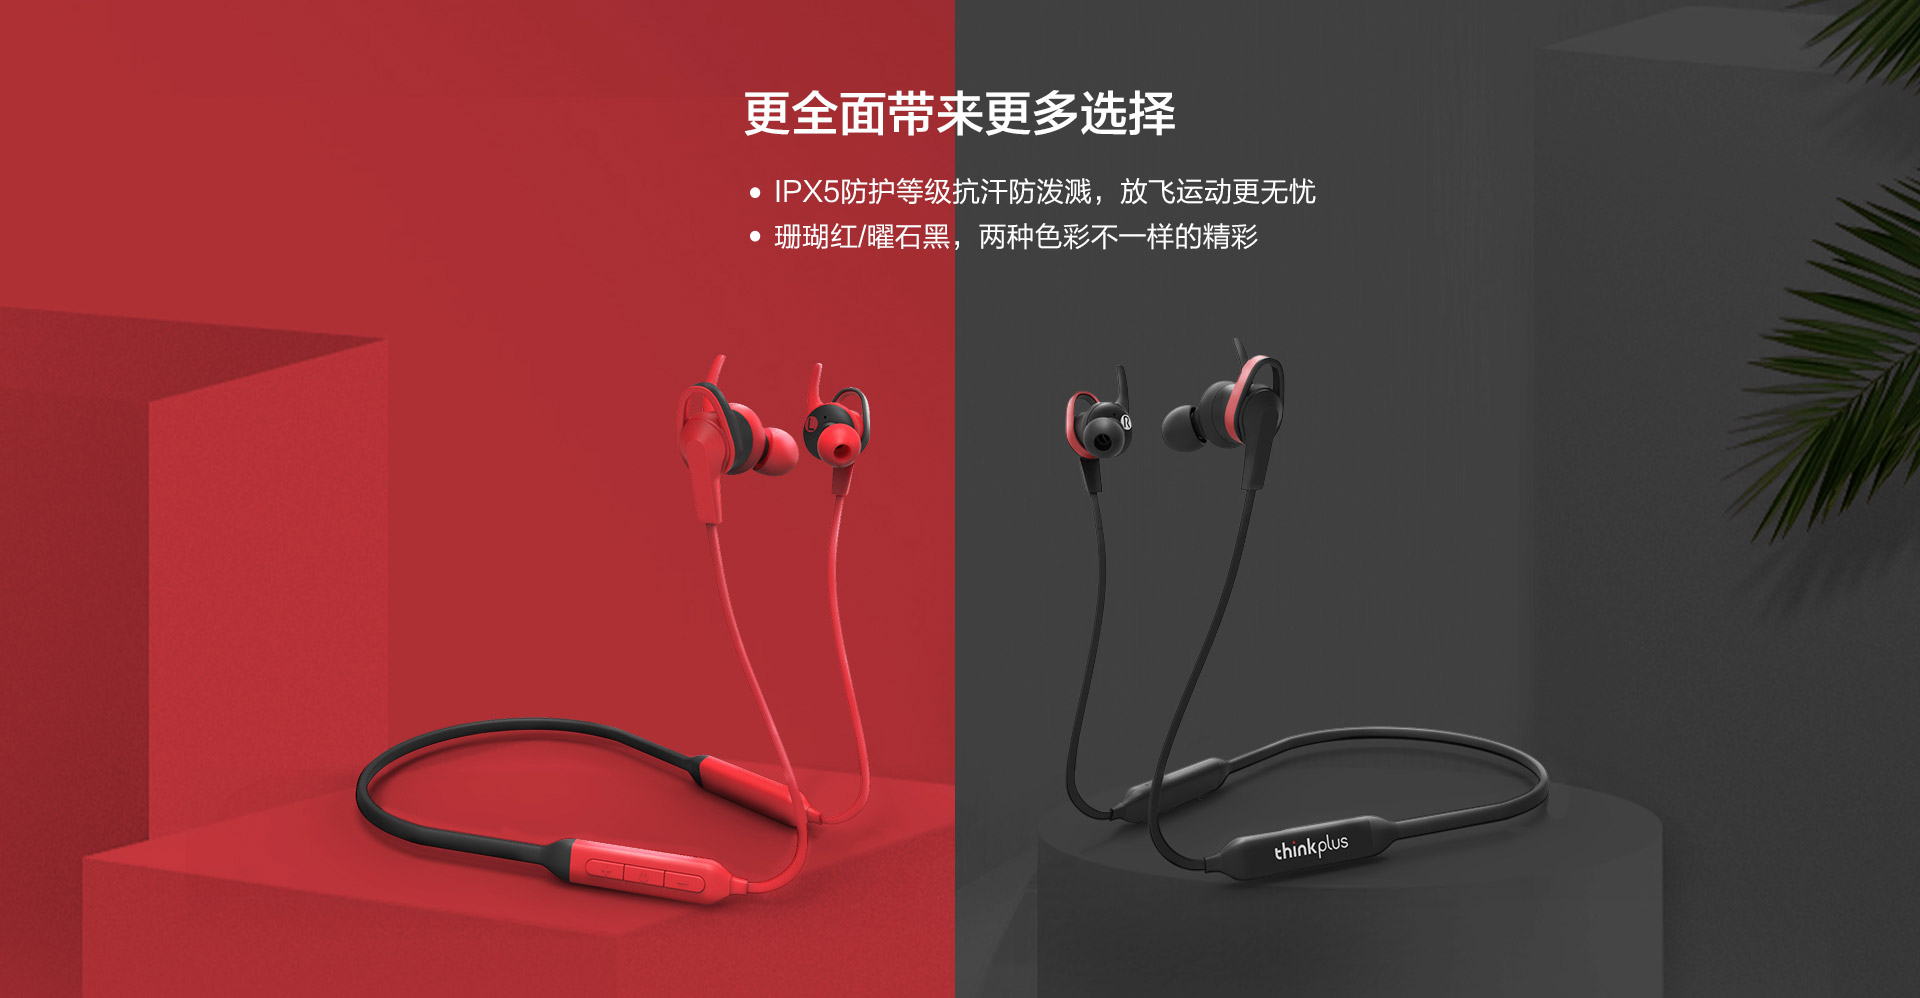 Lenovo launched Thinkplus Pods One earbuds in China for 299 Yuan